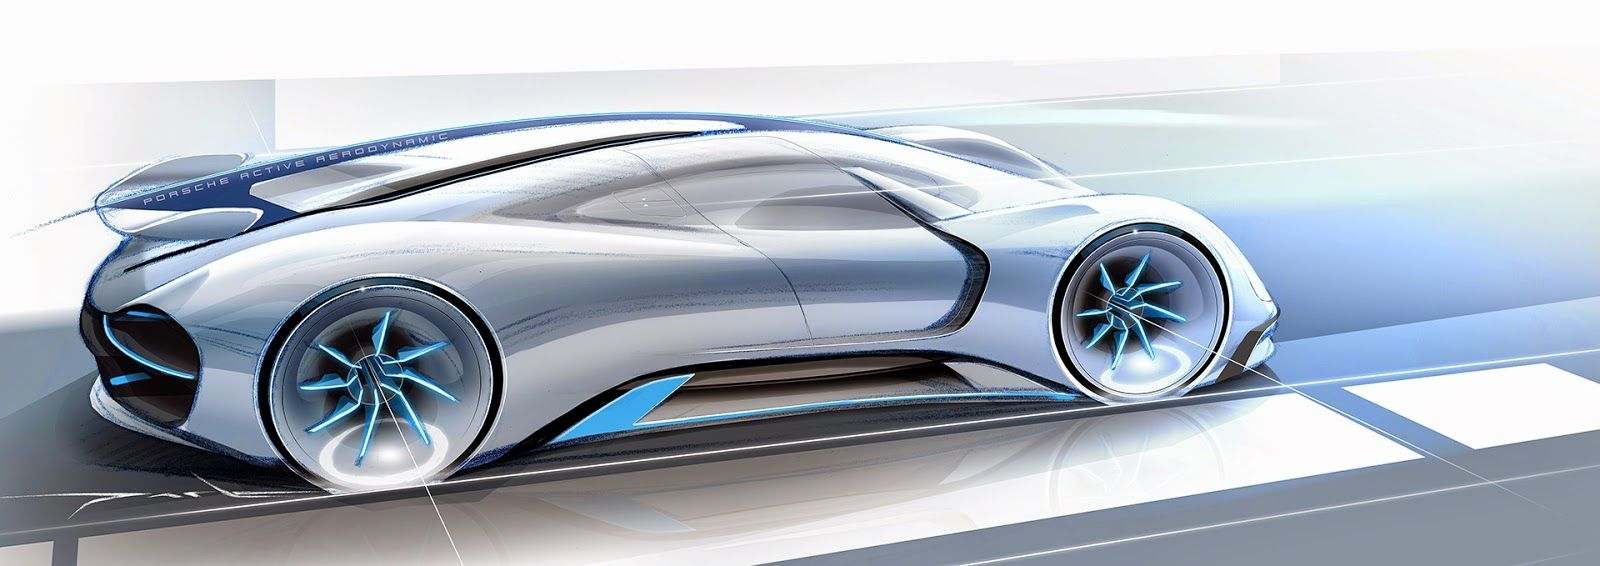 transportation design, car sketches, renderings, pforzheim | Skizze ...